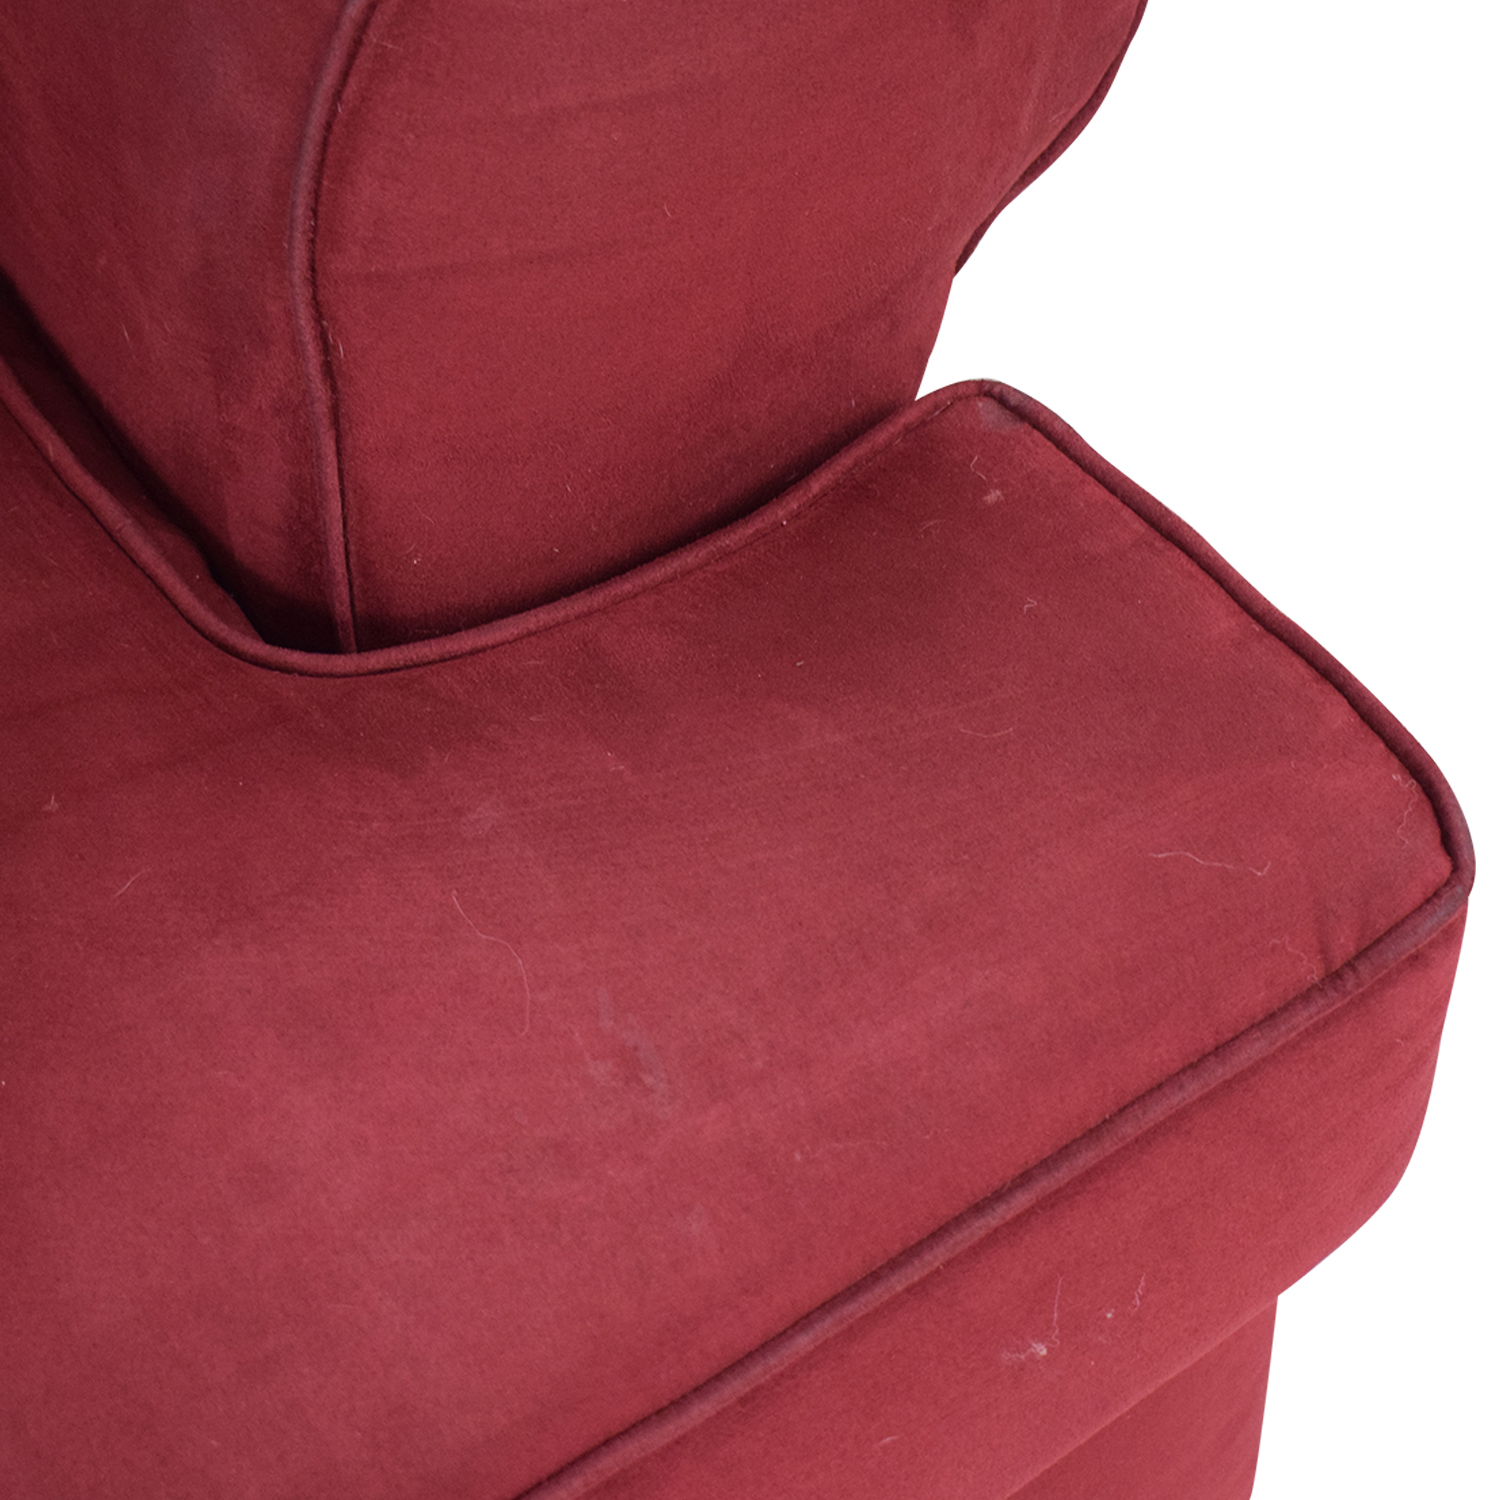 Rooms To Go Rooms To Go Emsworth Scarlet Chair used